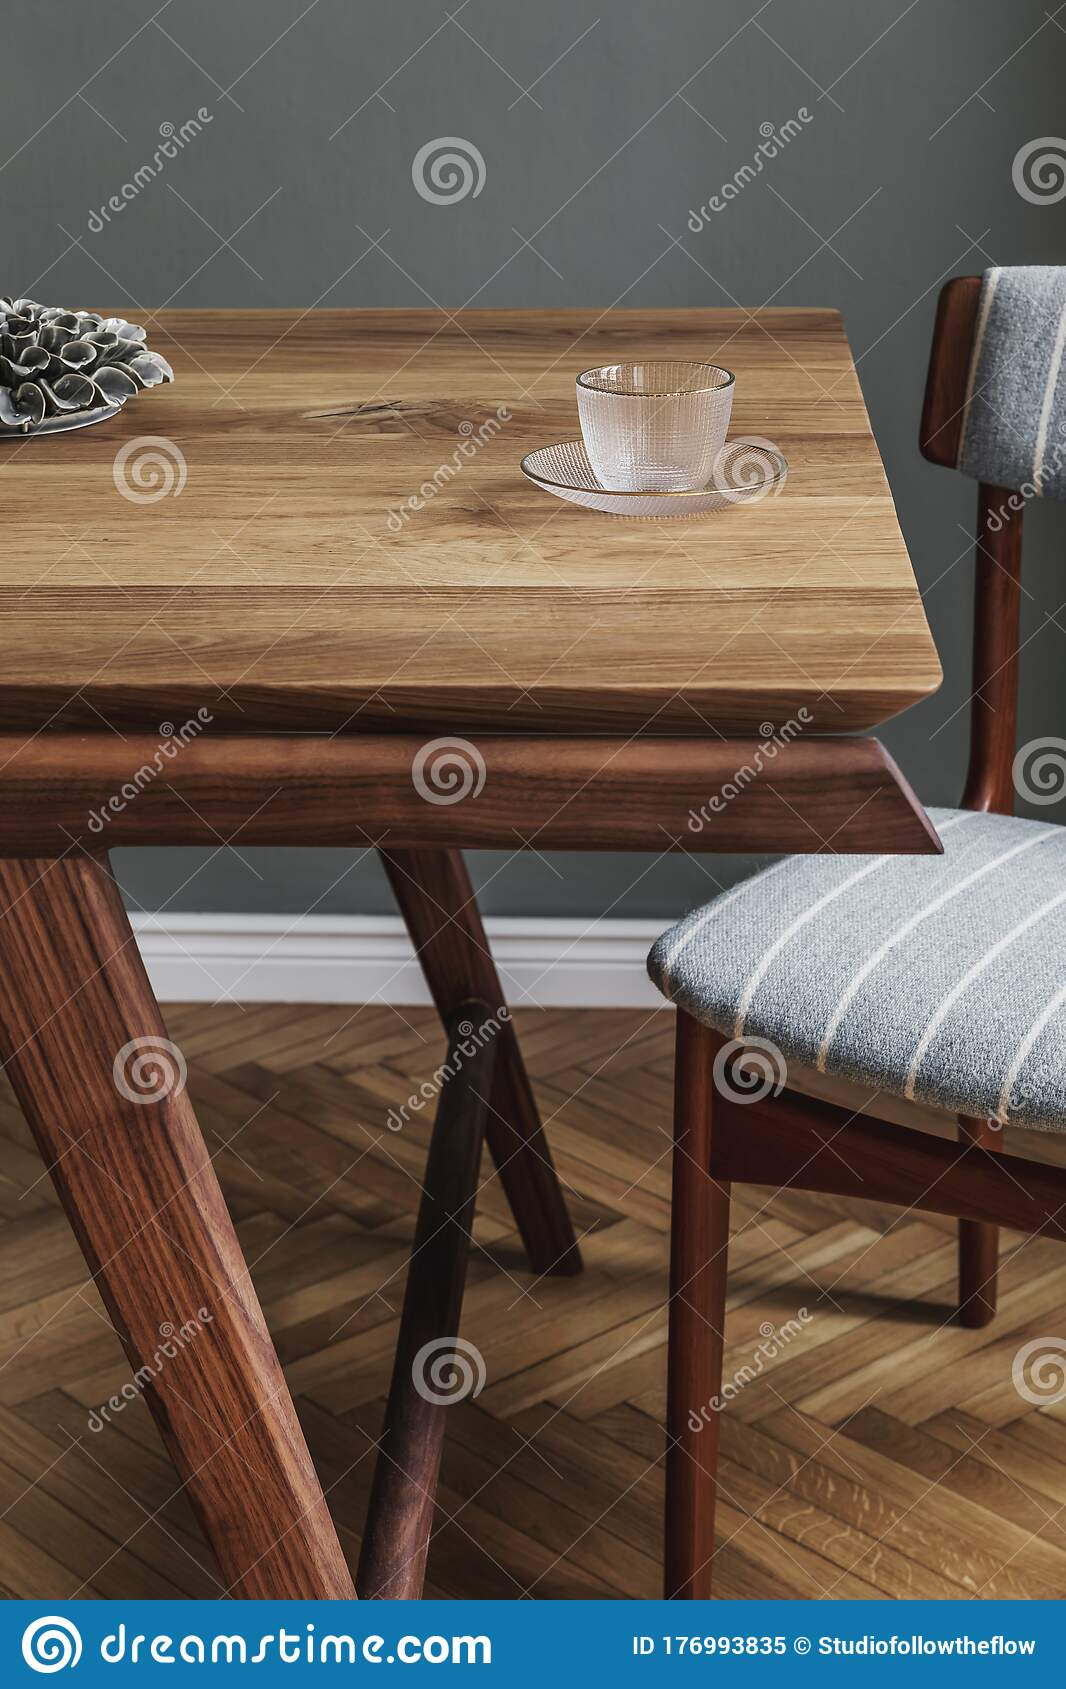 Stylish Dining Room With Wooden Table And Vintage Chair Stock Image Image Of Dining Designn 176993835